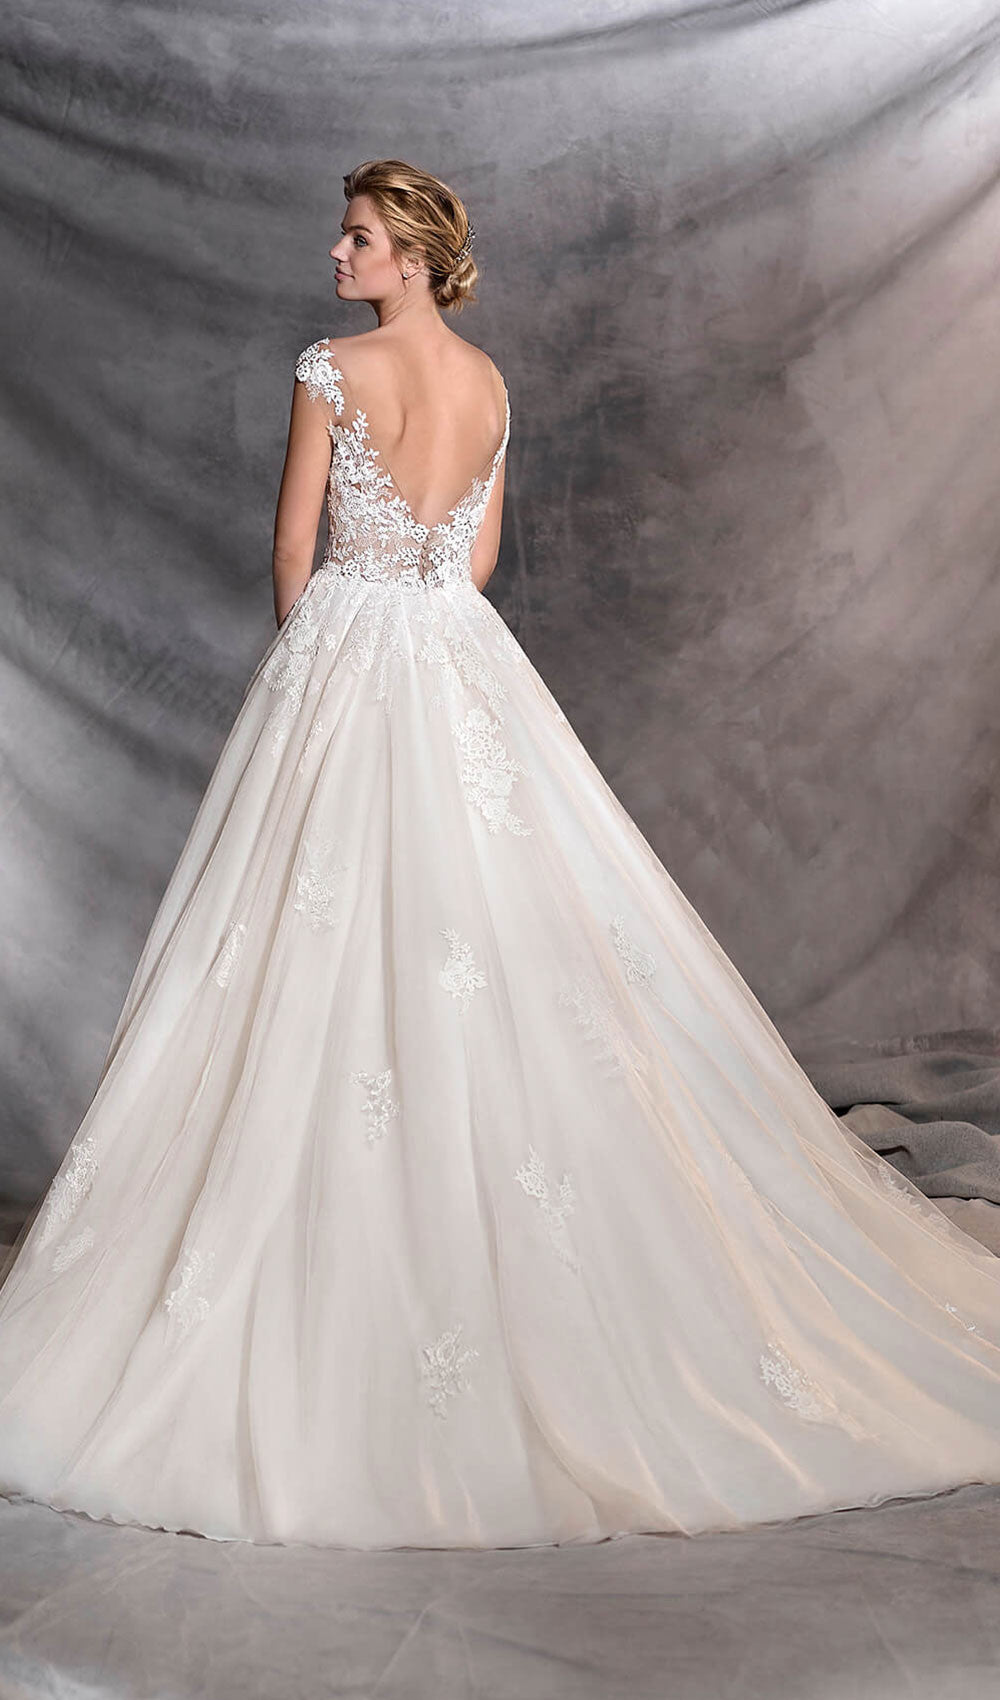 Pronovias - STYLE OFELIA| Schaffer's Bridal in Des Moines, Iowa and in Scottsdale, Arizona